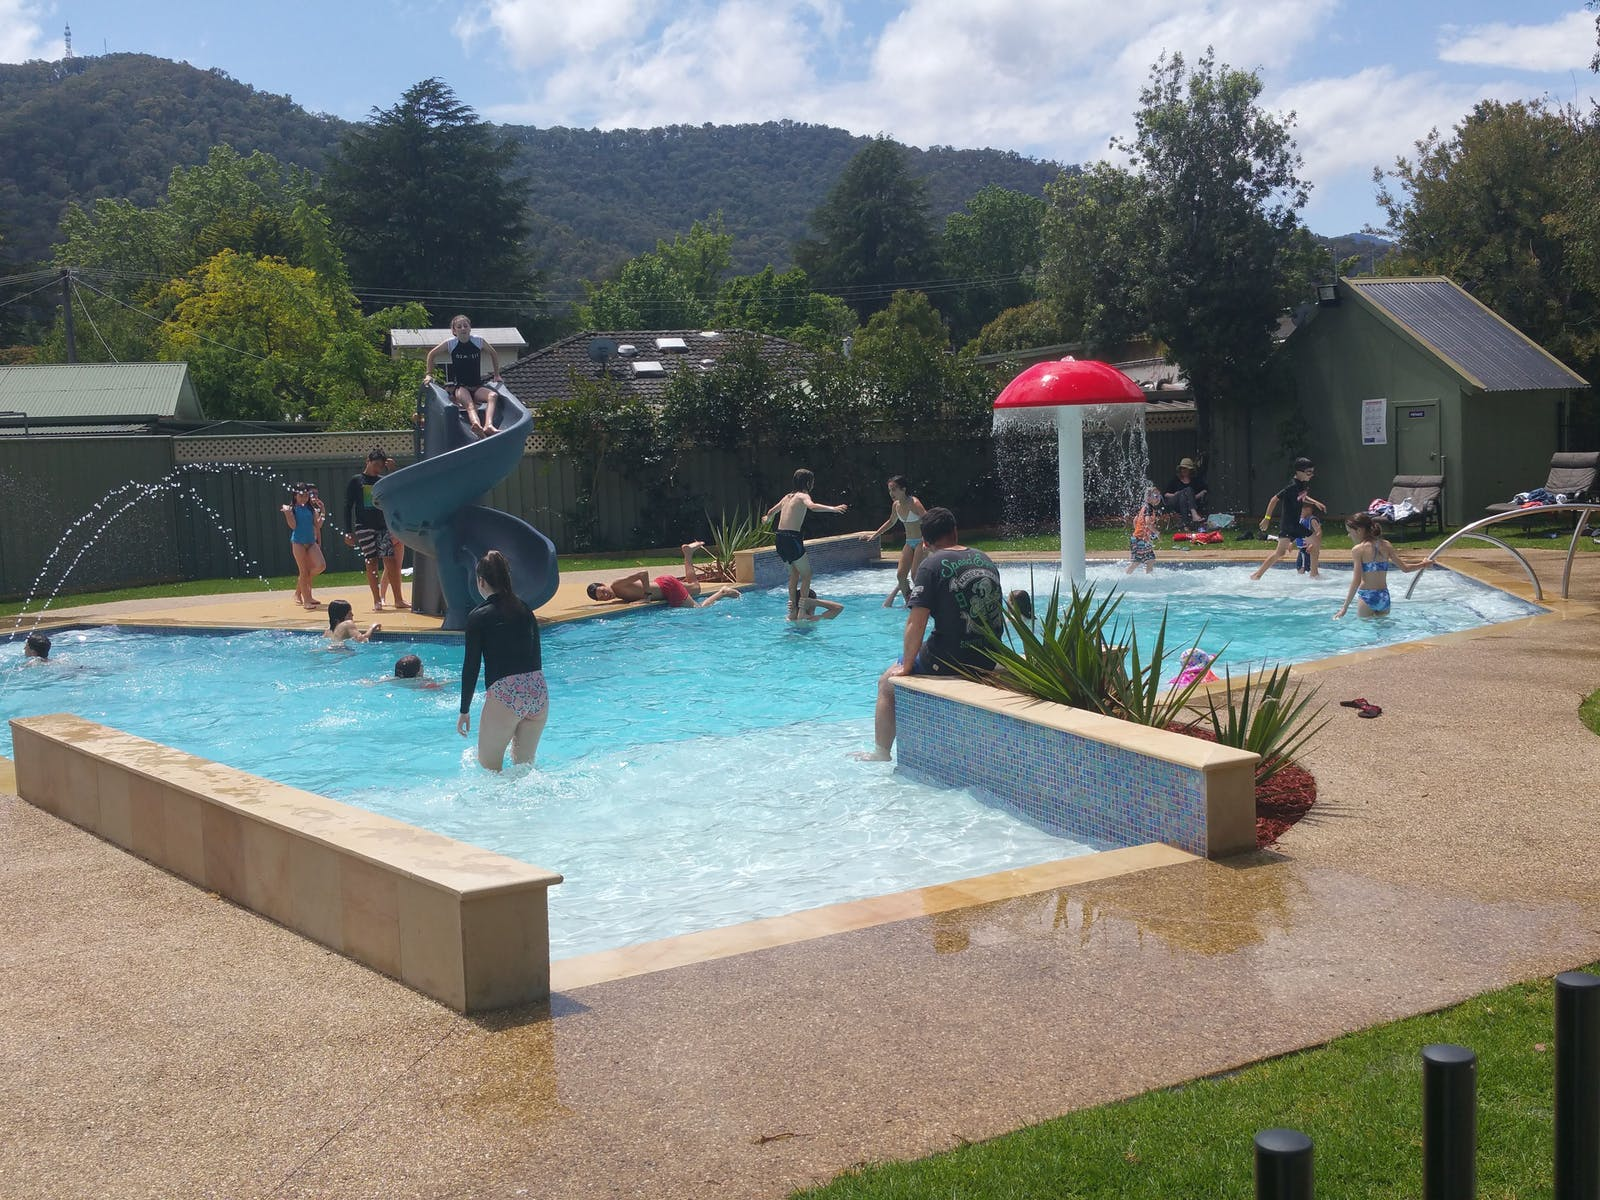 The park's new solar heated pool